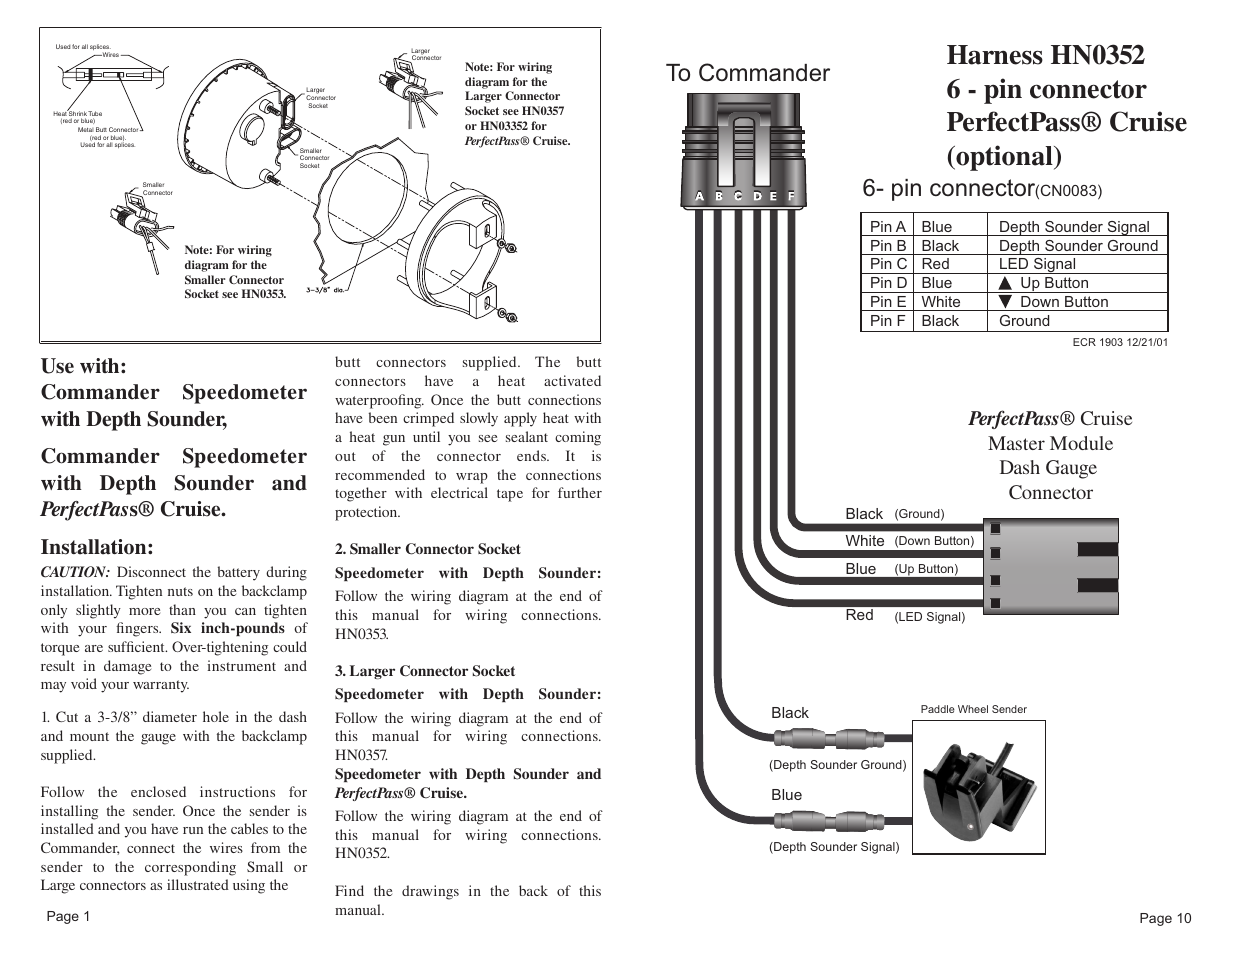 faria instruments commander page3 pin connector faria instruments commander user manual page 3 16 faria gauges wiring diagram at reclaimingppi.co